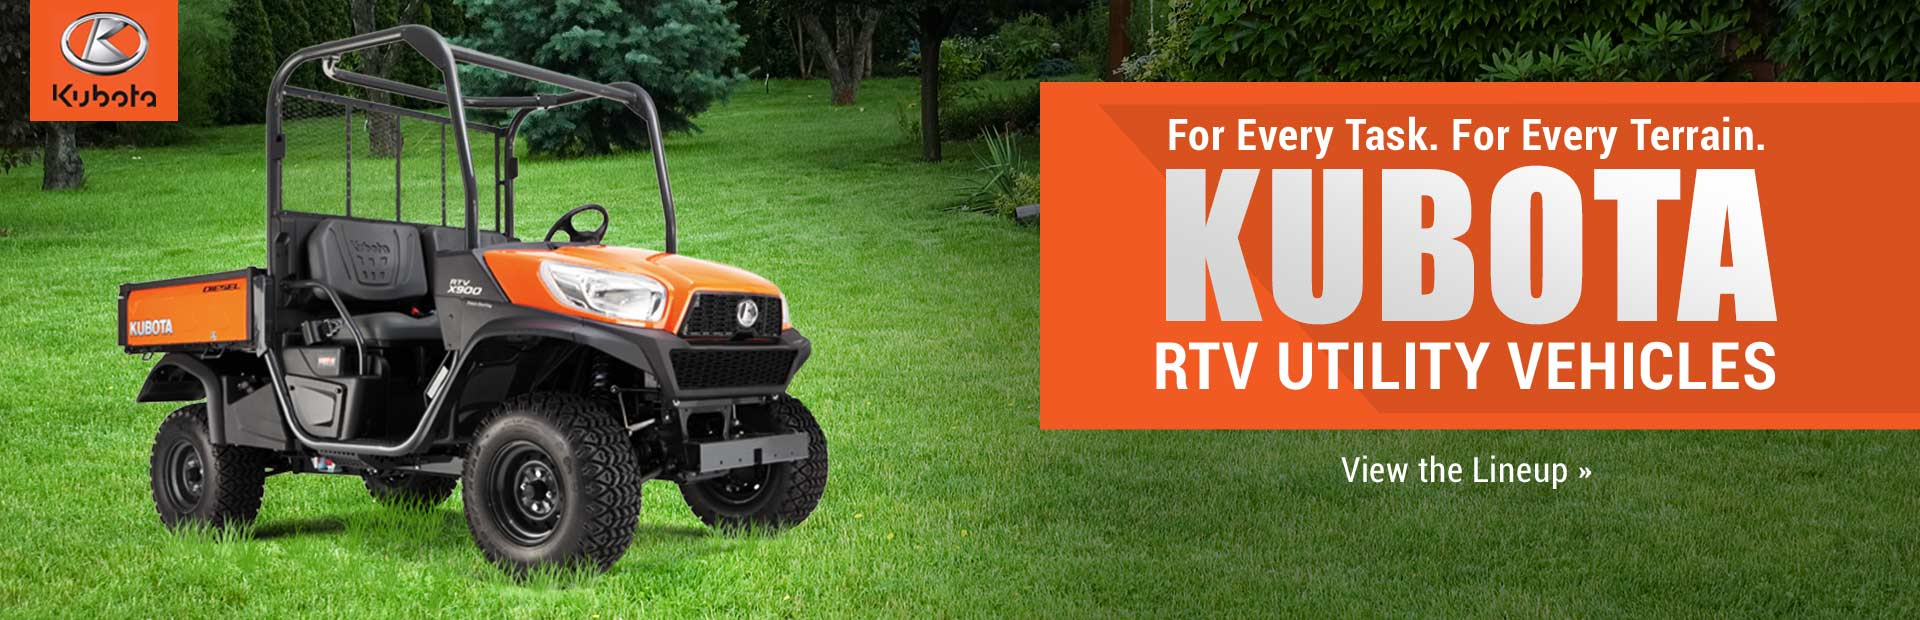 Kubota RTV Utility Vehicles: Click here to view the lineup.